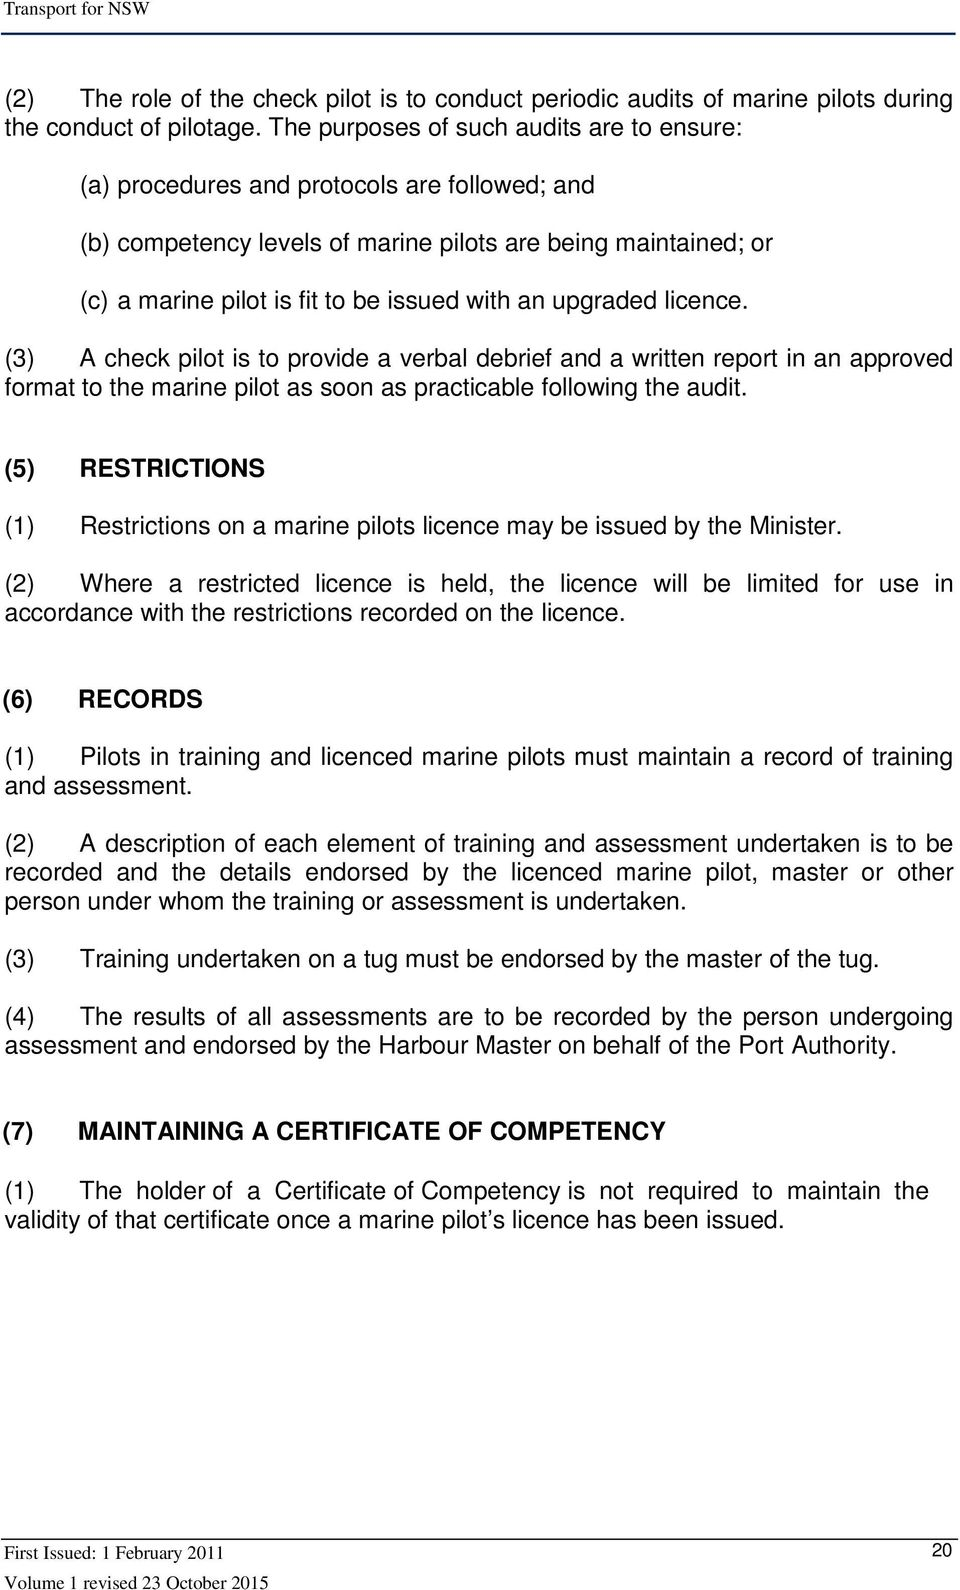 an upgraded licence. (3) A check pilot is to provide a verbal debrief and a written report in an approved format to the marine pilot as soon as practicable following the audit.